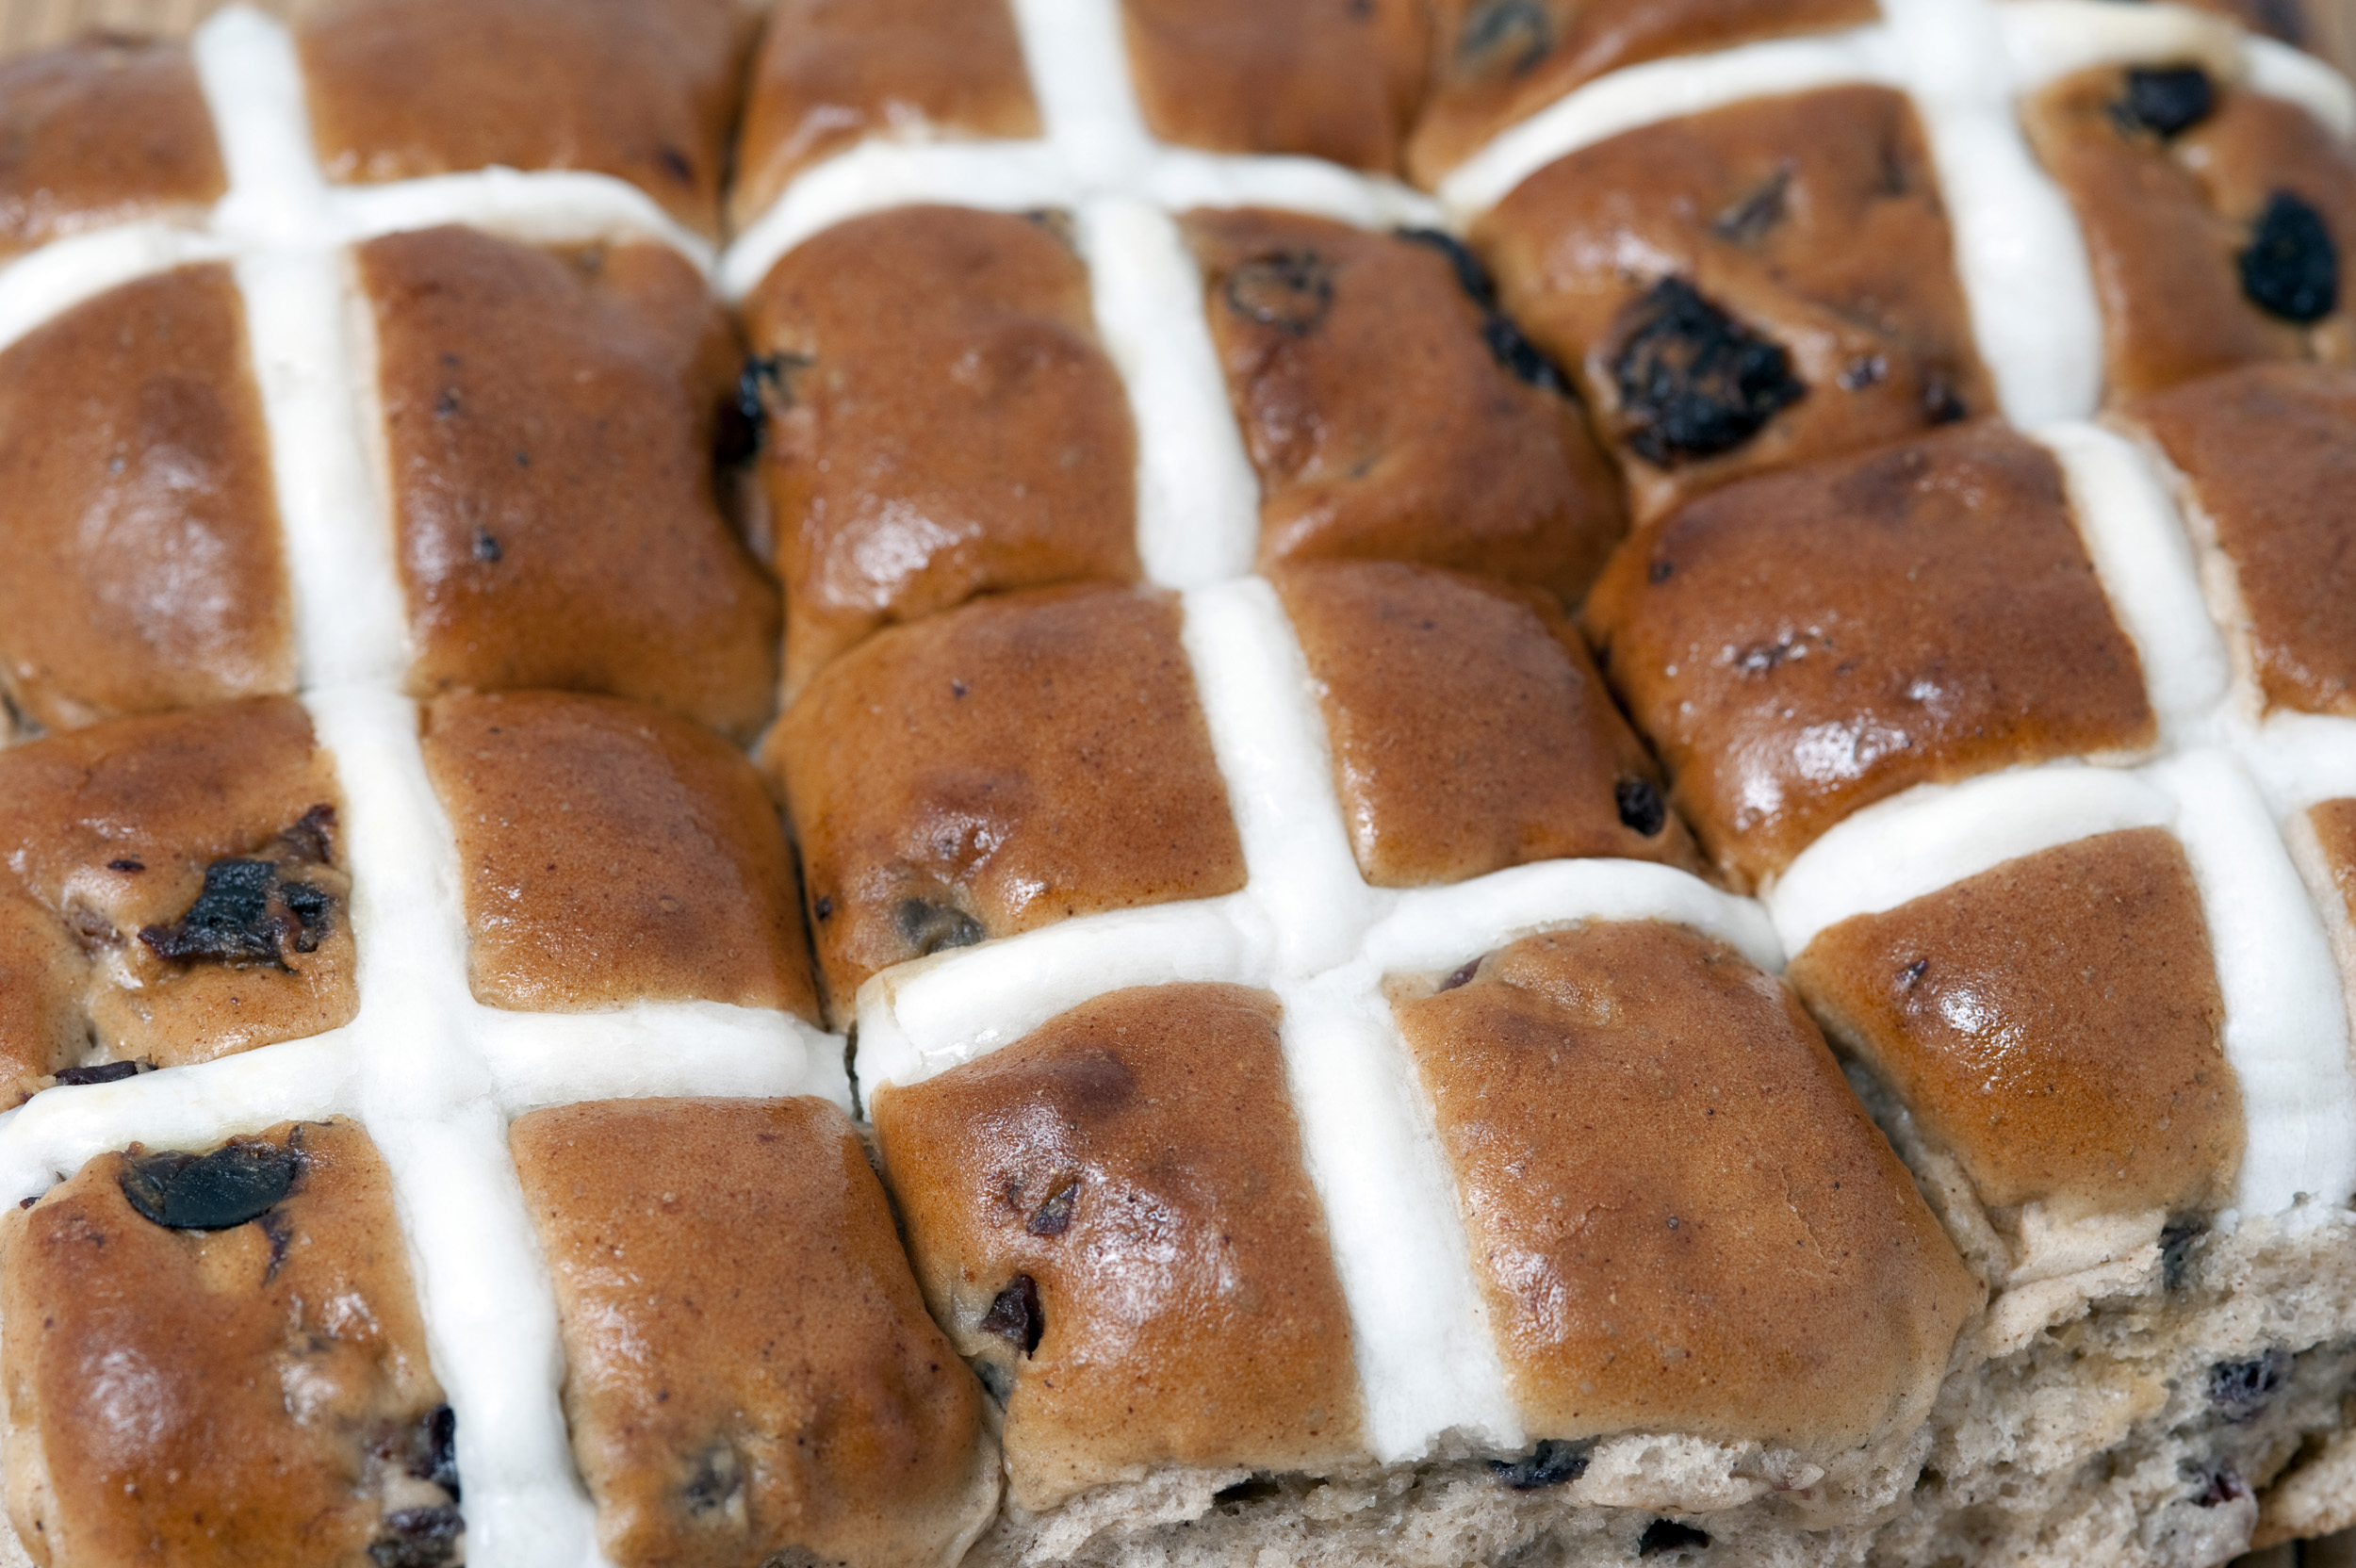 hotcross_buns.jpg - Batch of freshly baked spicy Hot Cross Buns showing the white glazed symbolic crosses on the top